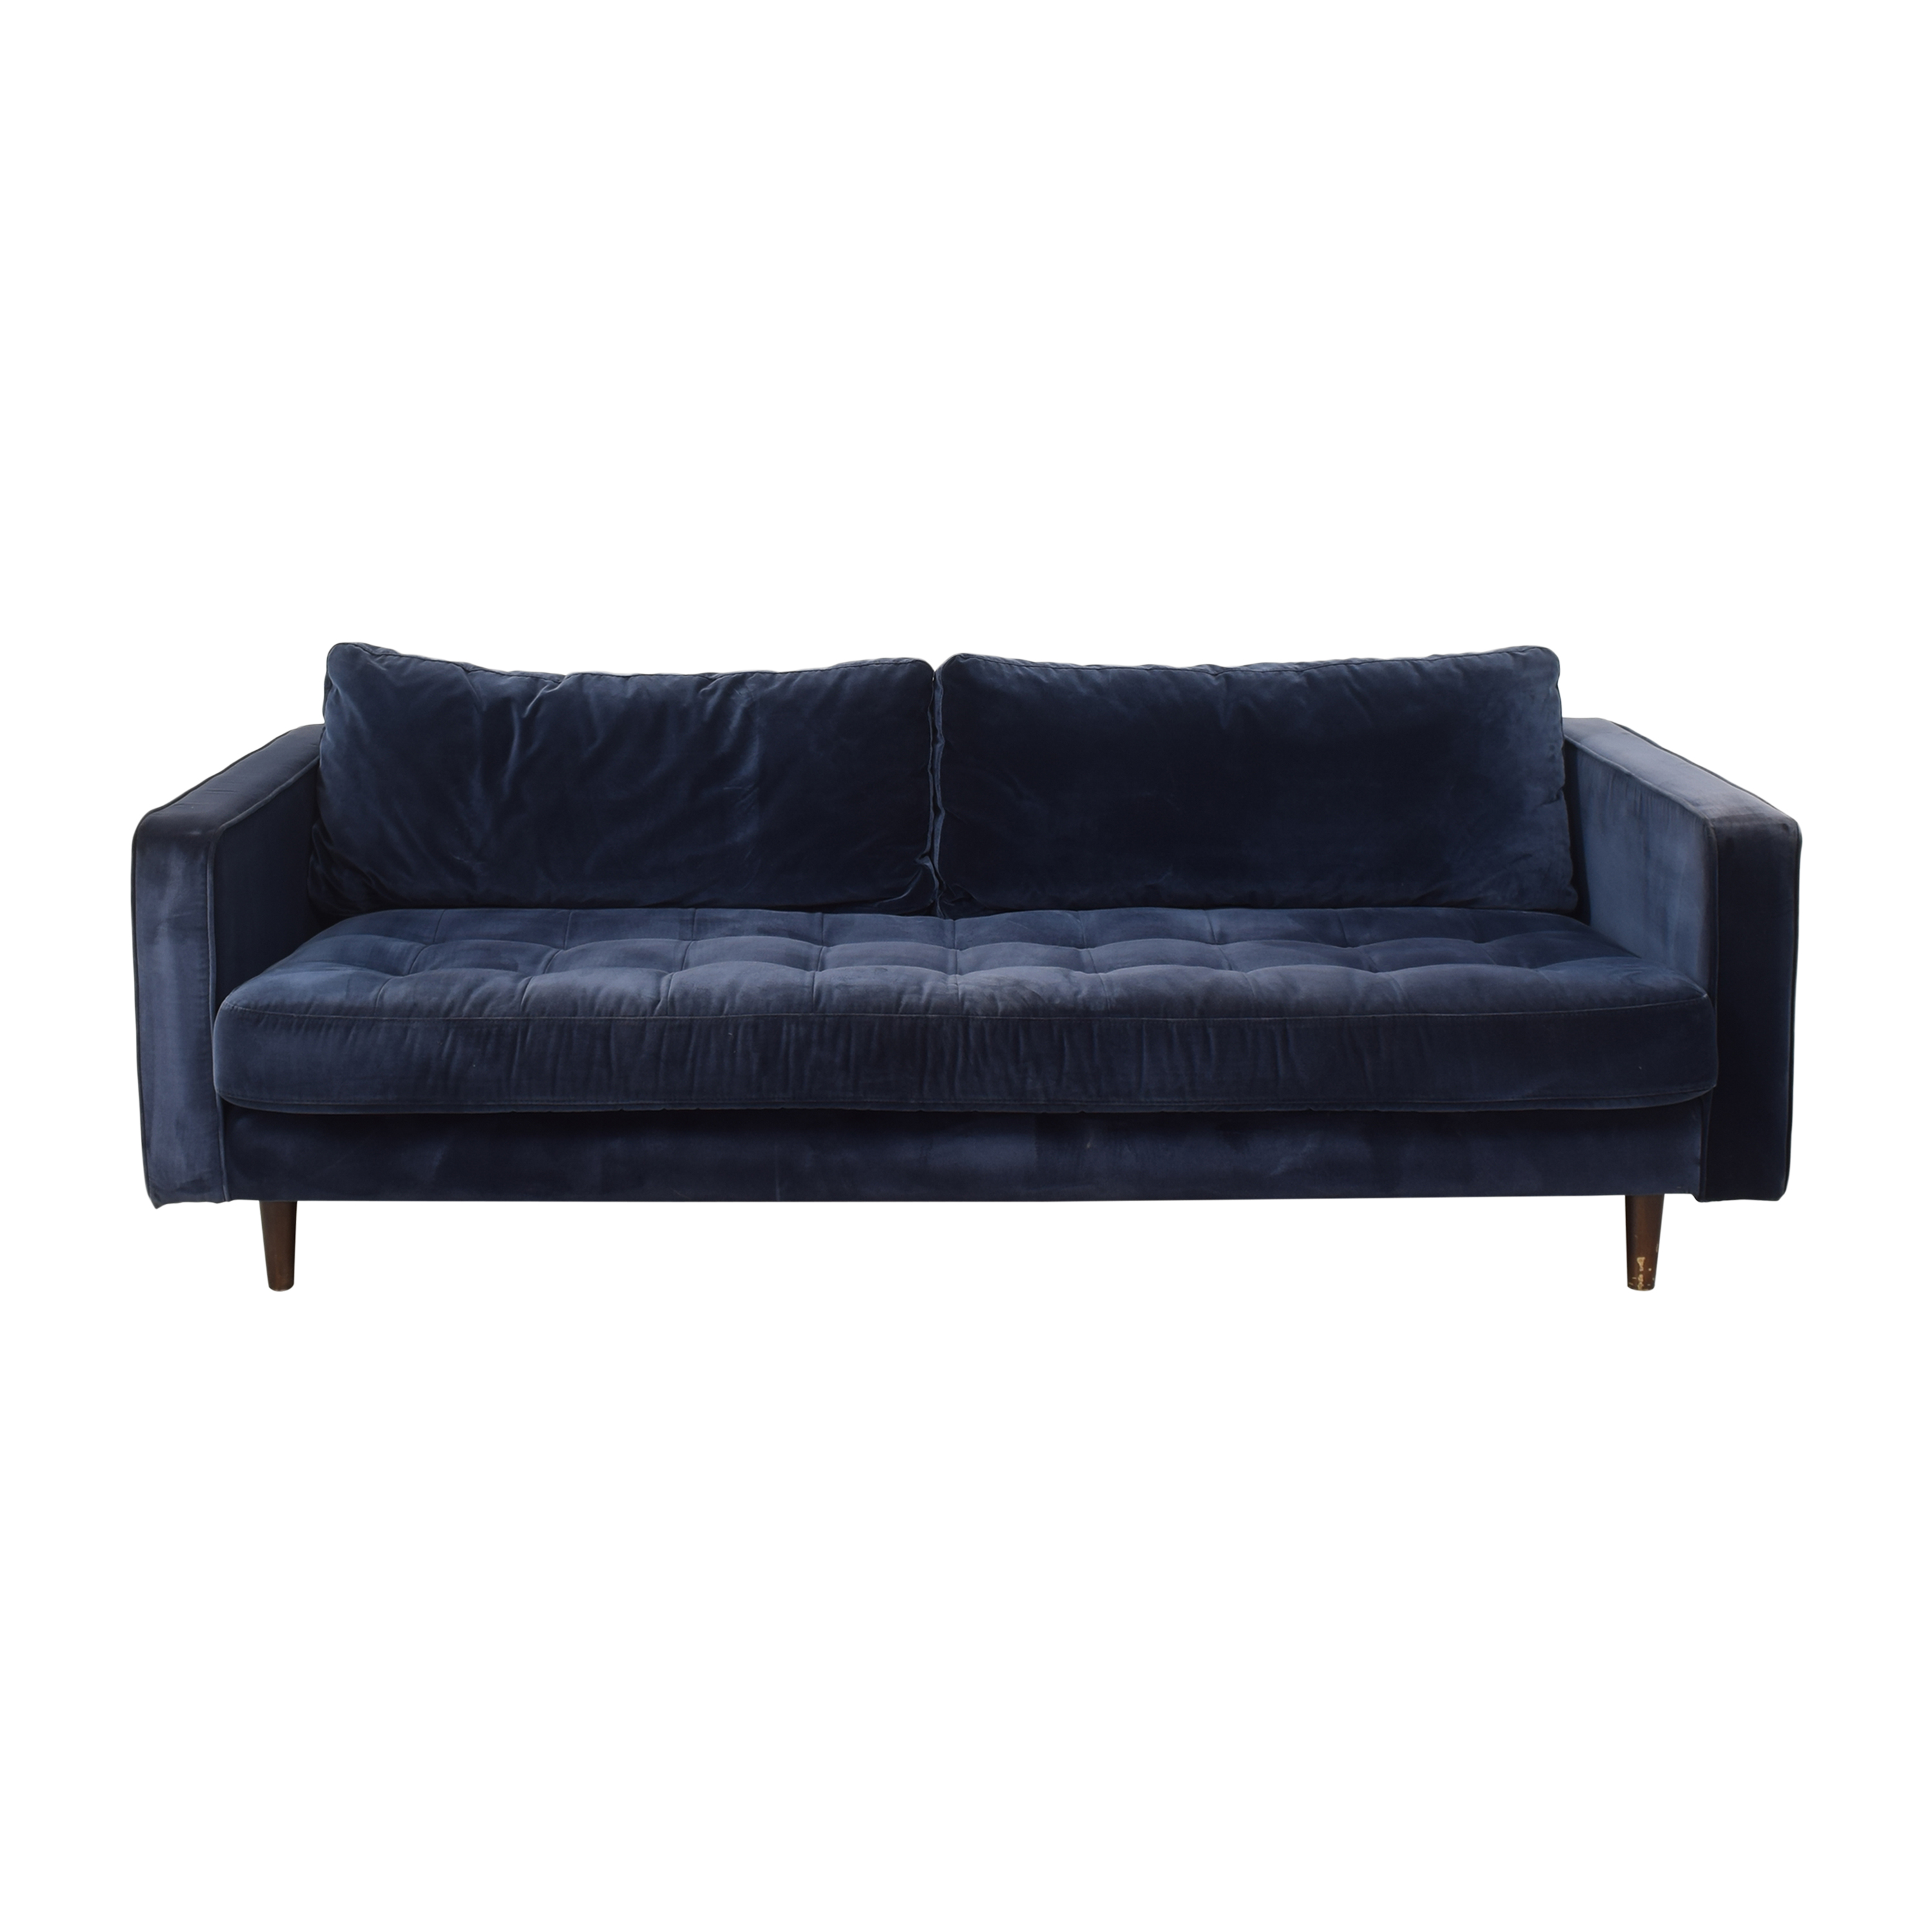 Article Article Sven Tufted Sofa price